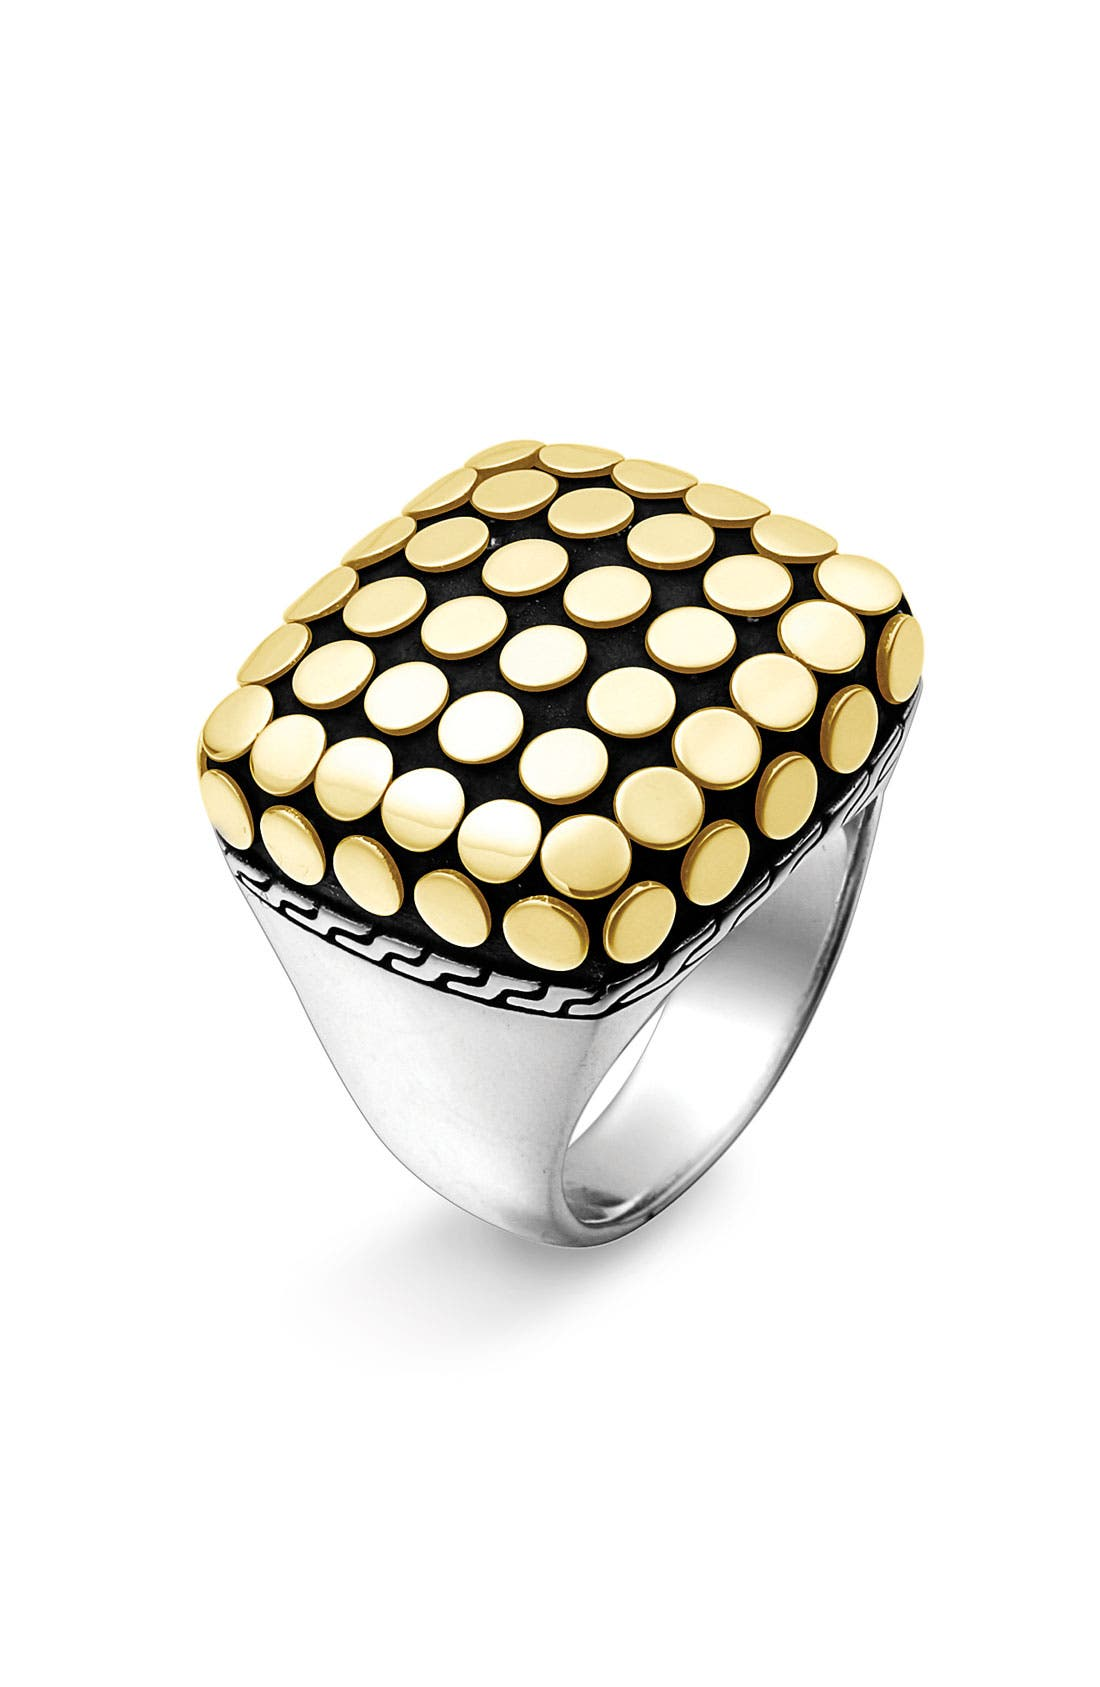 Main Image - John Hardy 'Dot Gold' Square Ring